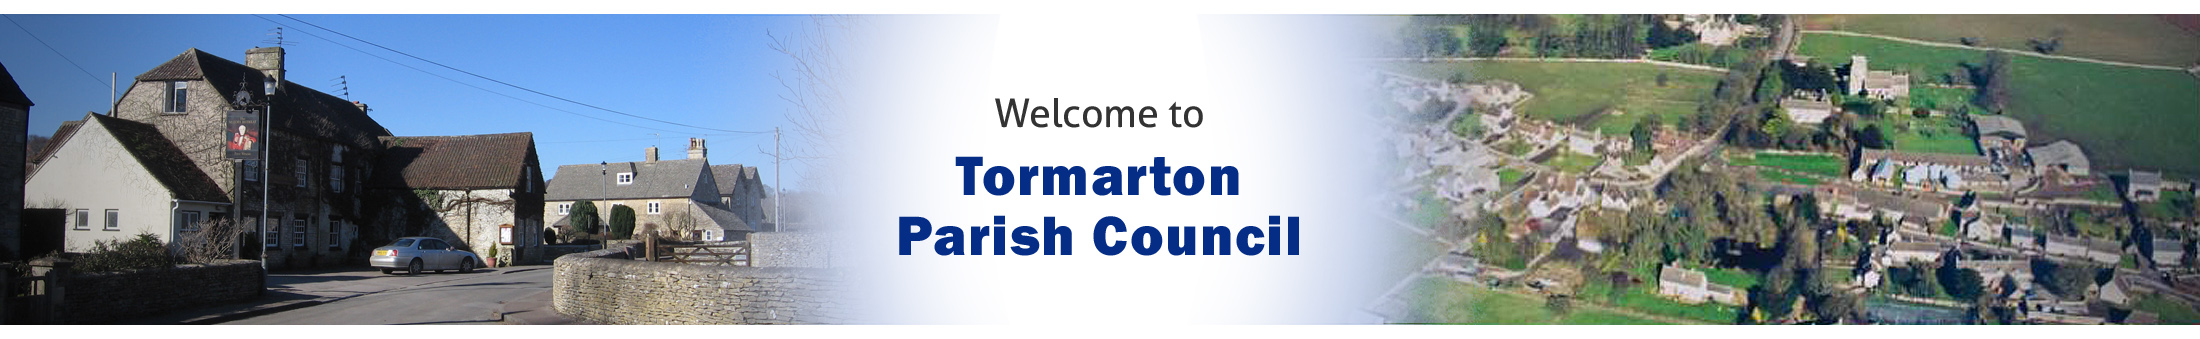 Header Image for Tormarton Parish Council